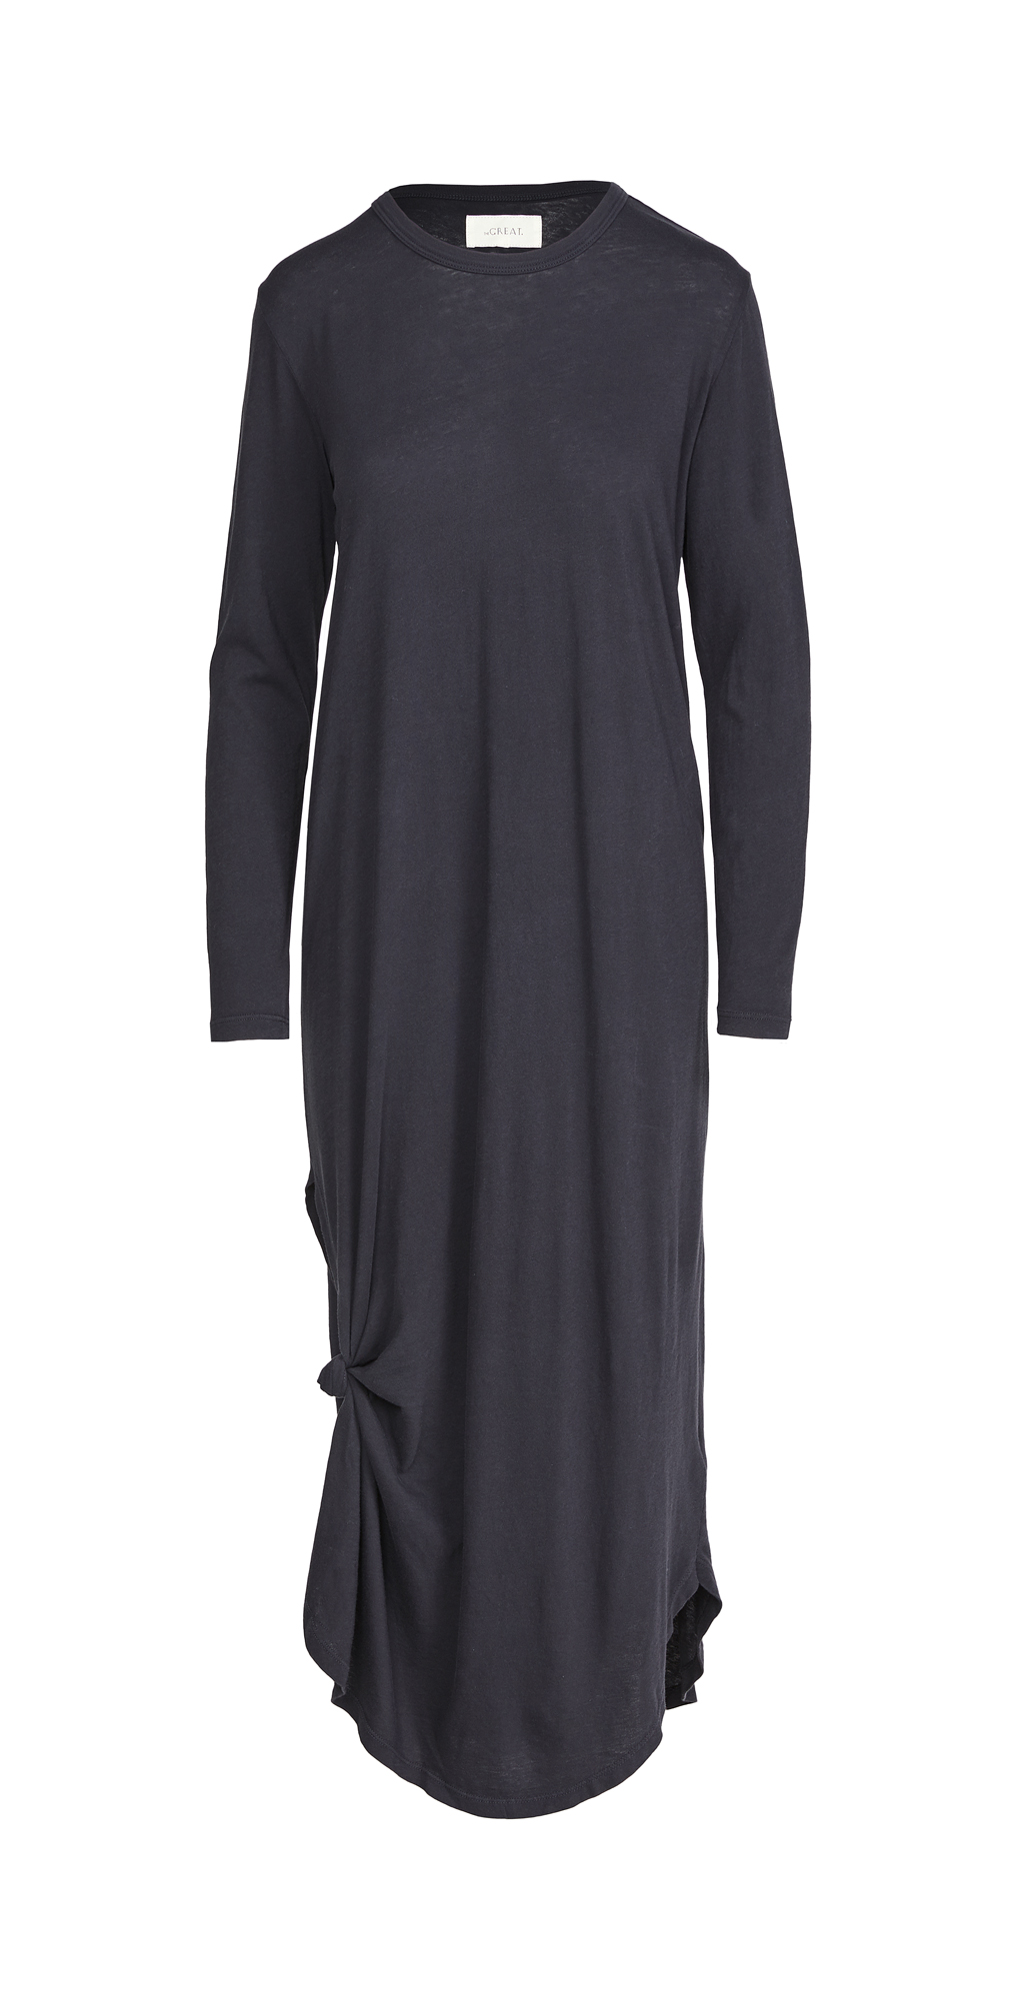 THE GREAT. Long Sleeve Side Knot Dress